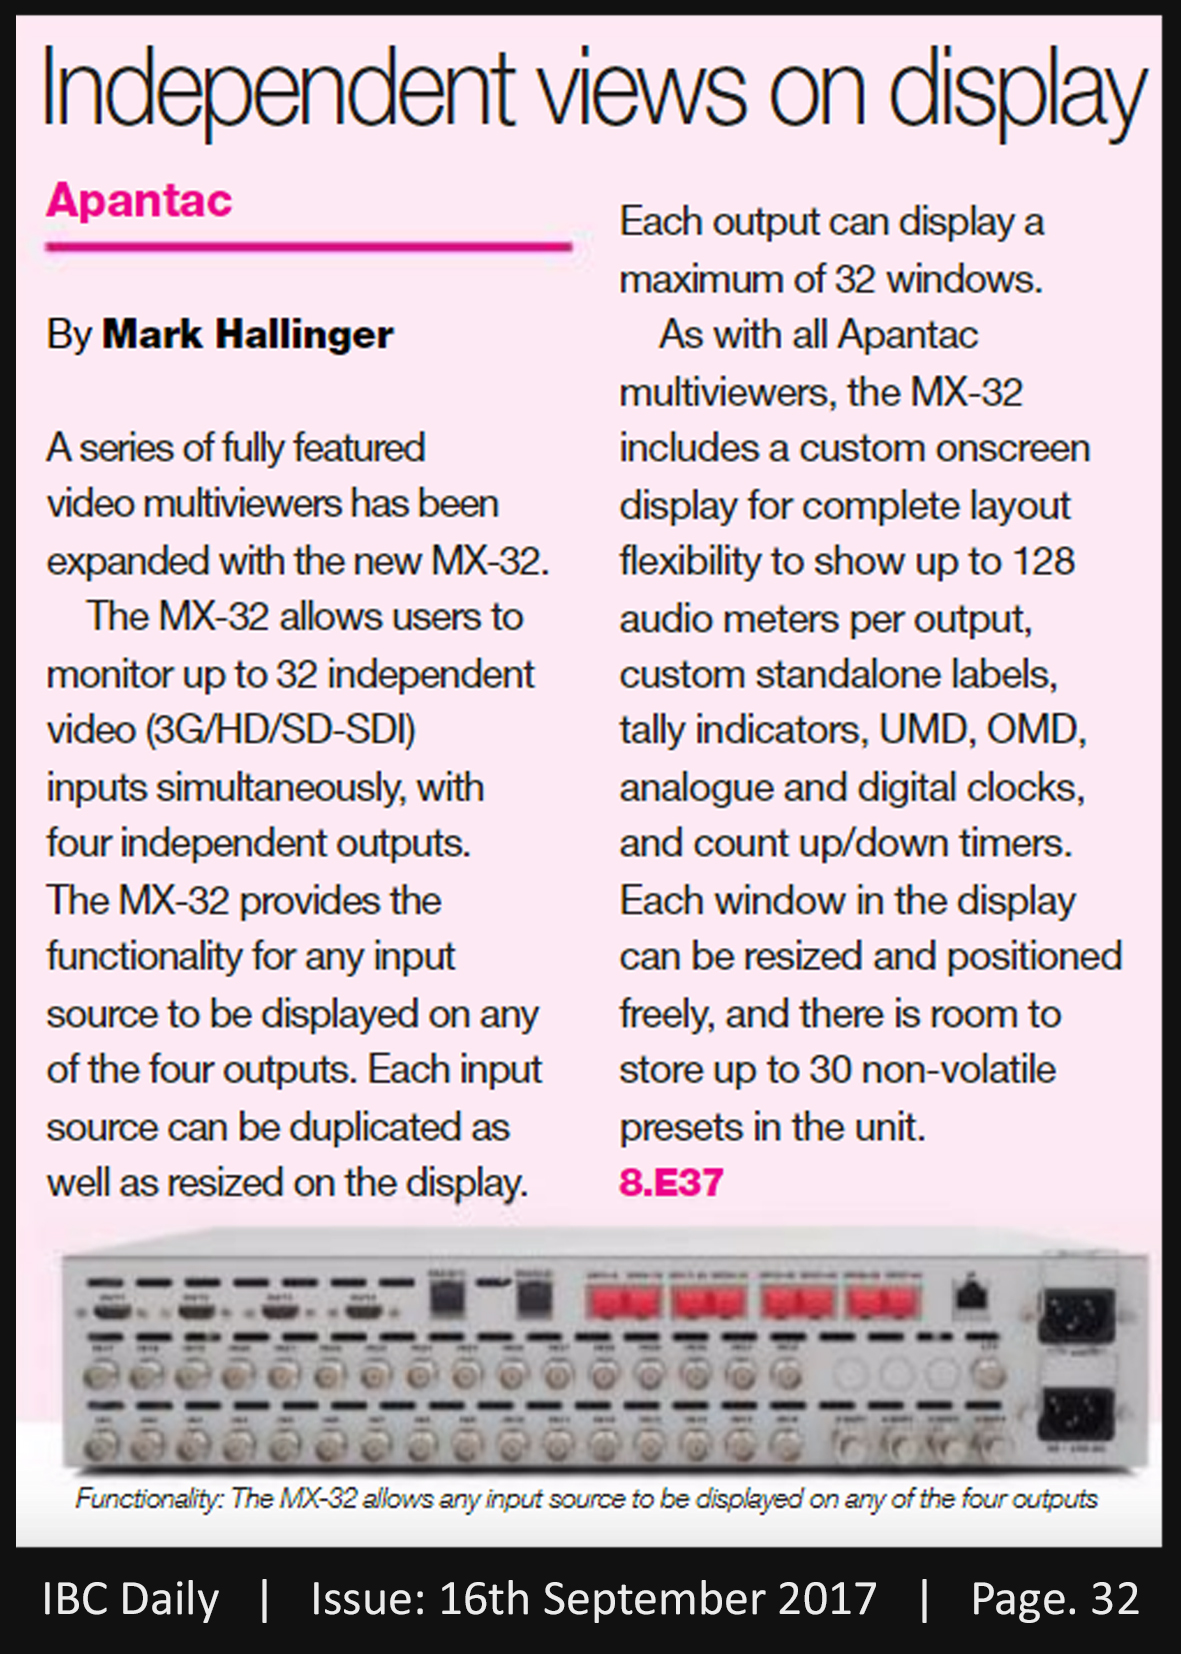 Apantac_Cost Effective Multiviewers_IBC Daily_16.09.2017_Pg 32